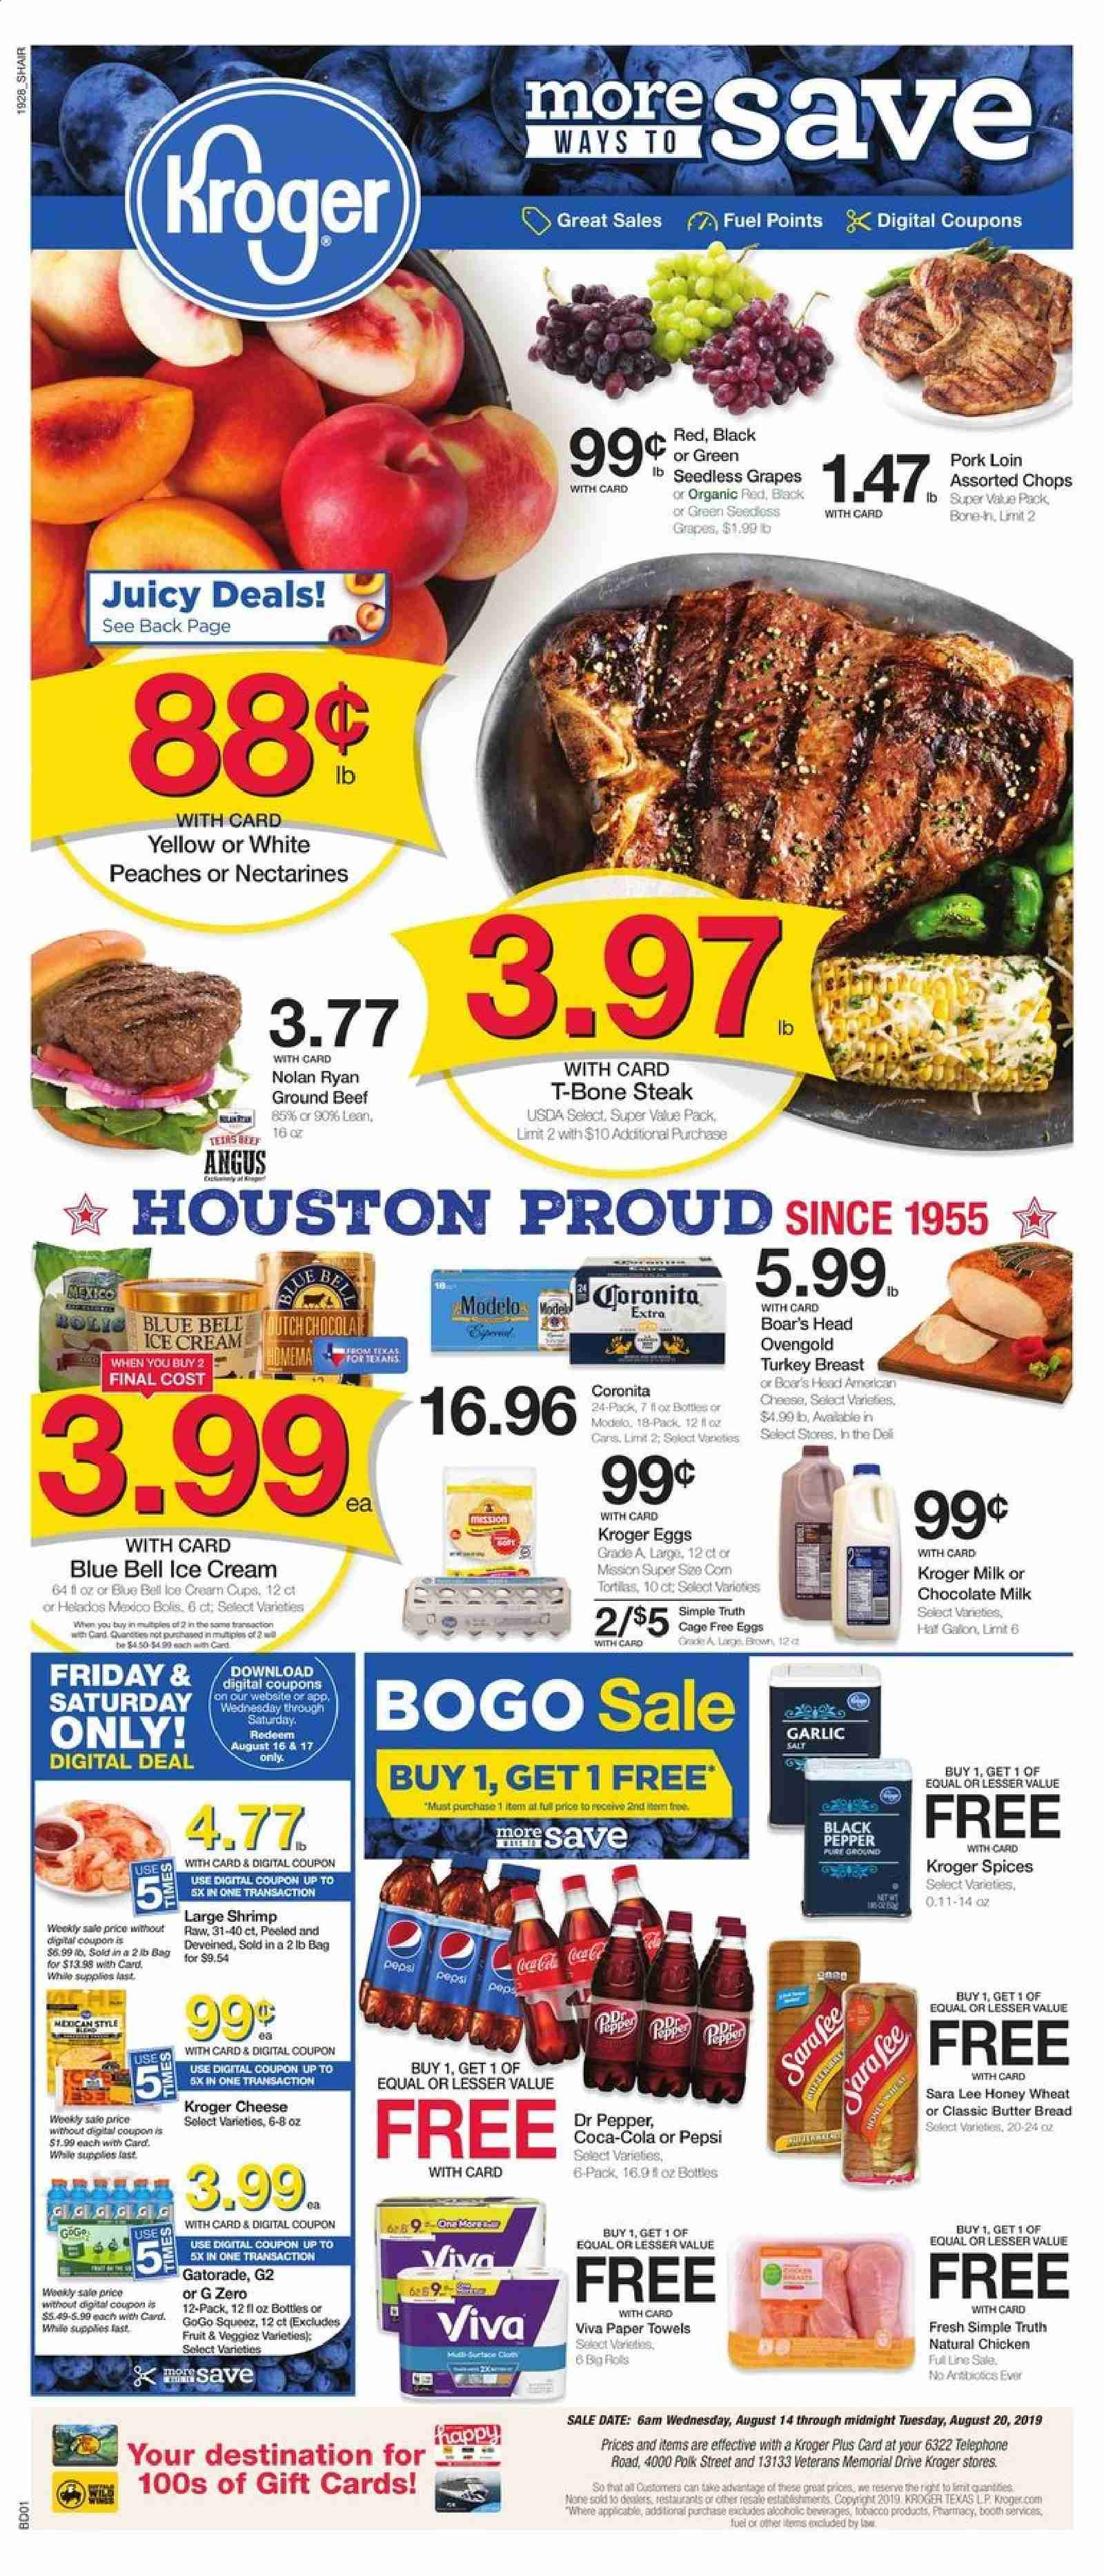 Kroger Flyer - 08.14.2019 - 08.20.2019 - Sales products - garlic, grapes, nectarines, seedless grapes, peache, bread, rolls, shrimps, american cheese, cheese, milk, chocolate milk, eggs, butter, ice cream, chocolate, salt, black pepper, pepper, honey, Coca-Cola, Pepsi, Dr. Pepper, turkey, turkey breast, chicken, beef meat, t-bone steak, steak, ground beef, pork loin, pork meat, paper towel, Cars, fuel. Page 1.